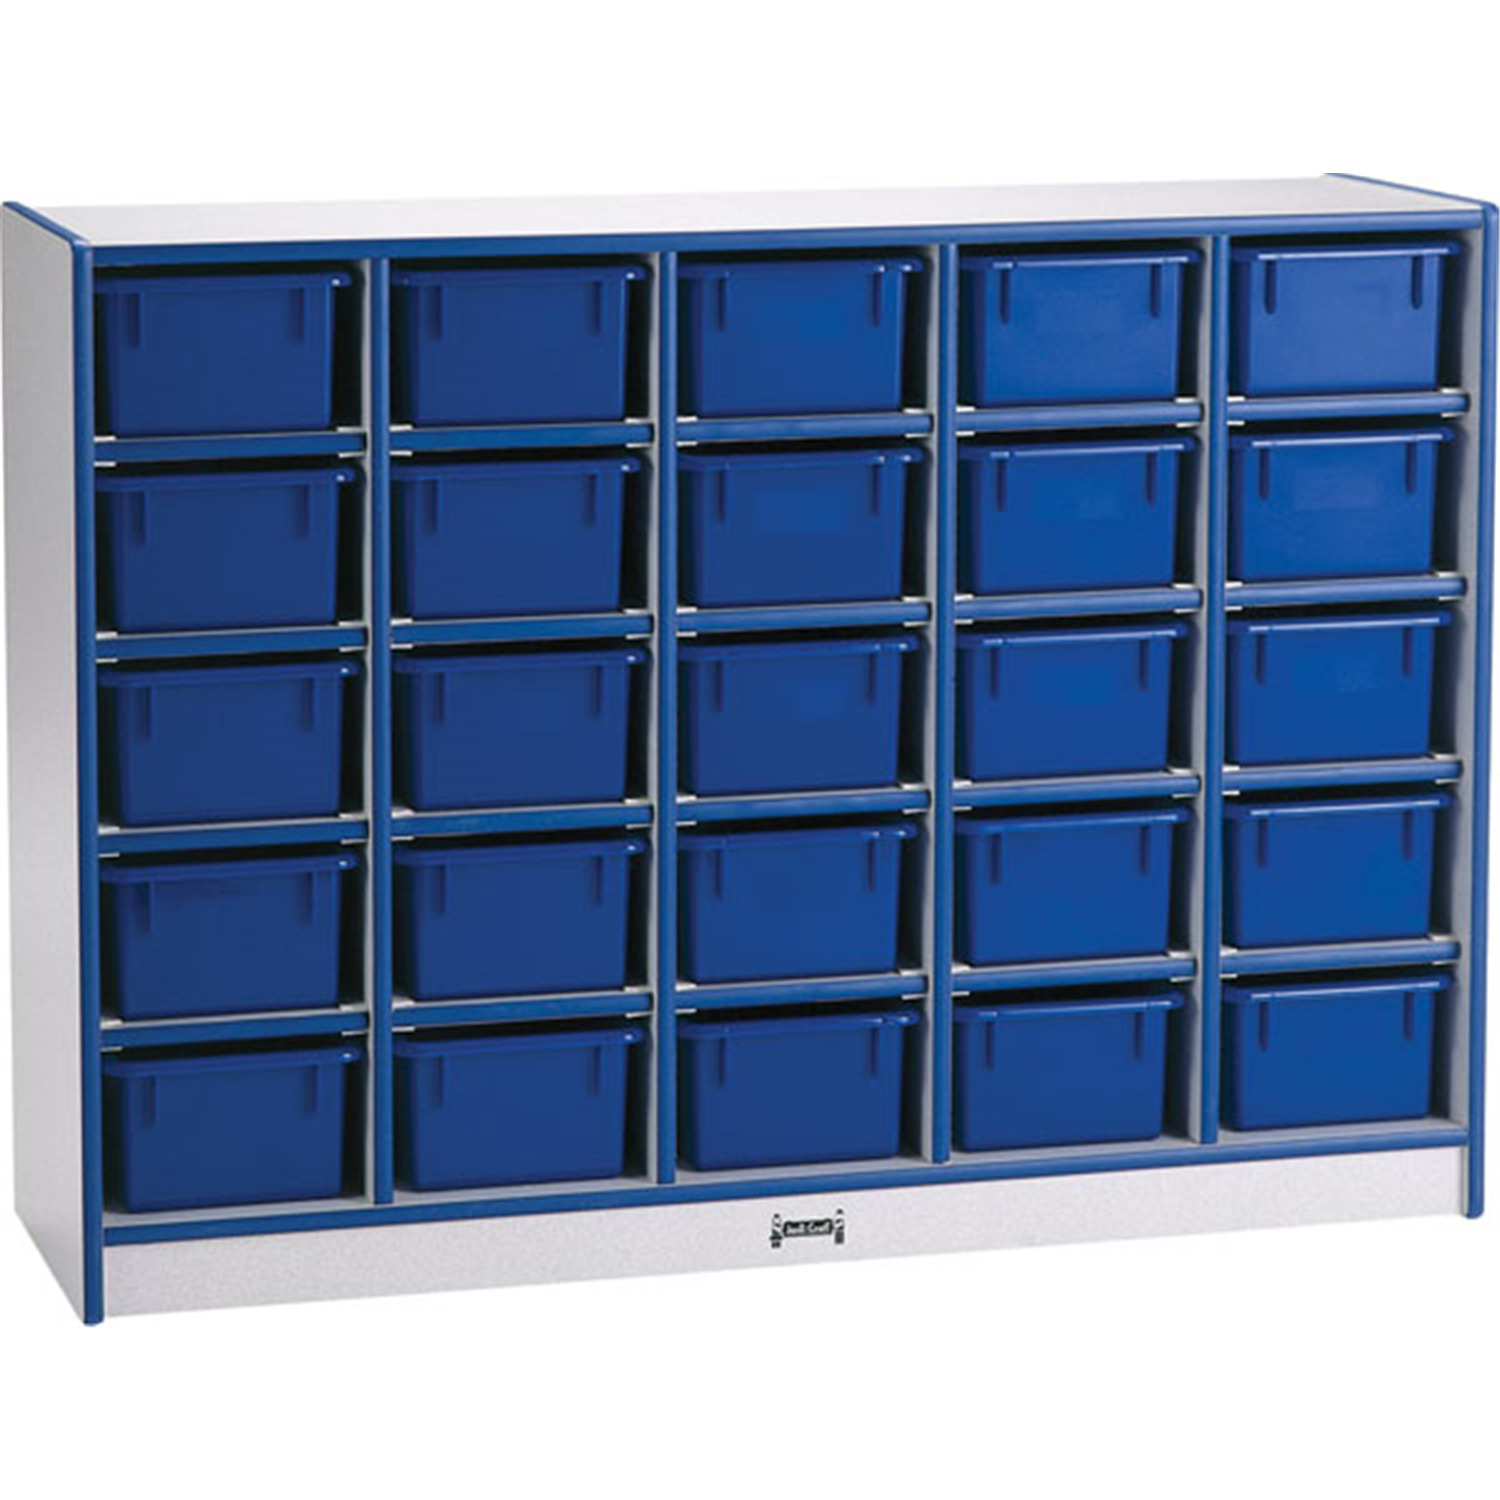 25 Tray Mobile Cubbie Without Trays - [0425JCWW004]